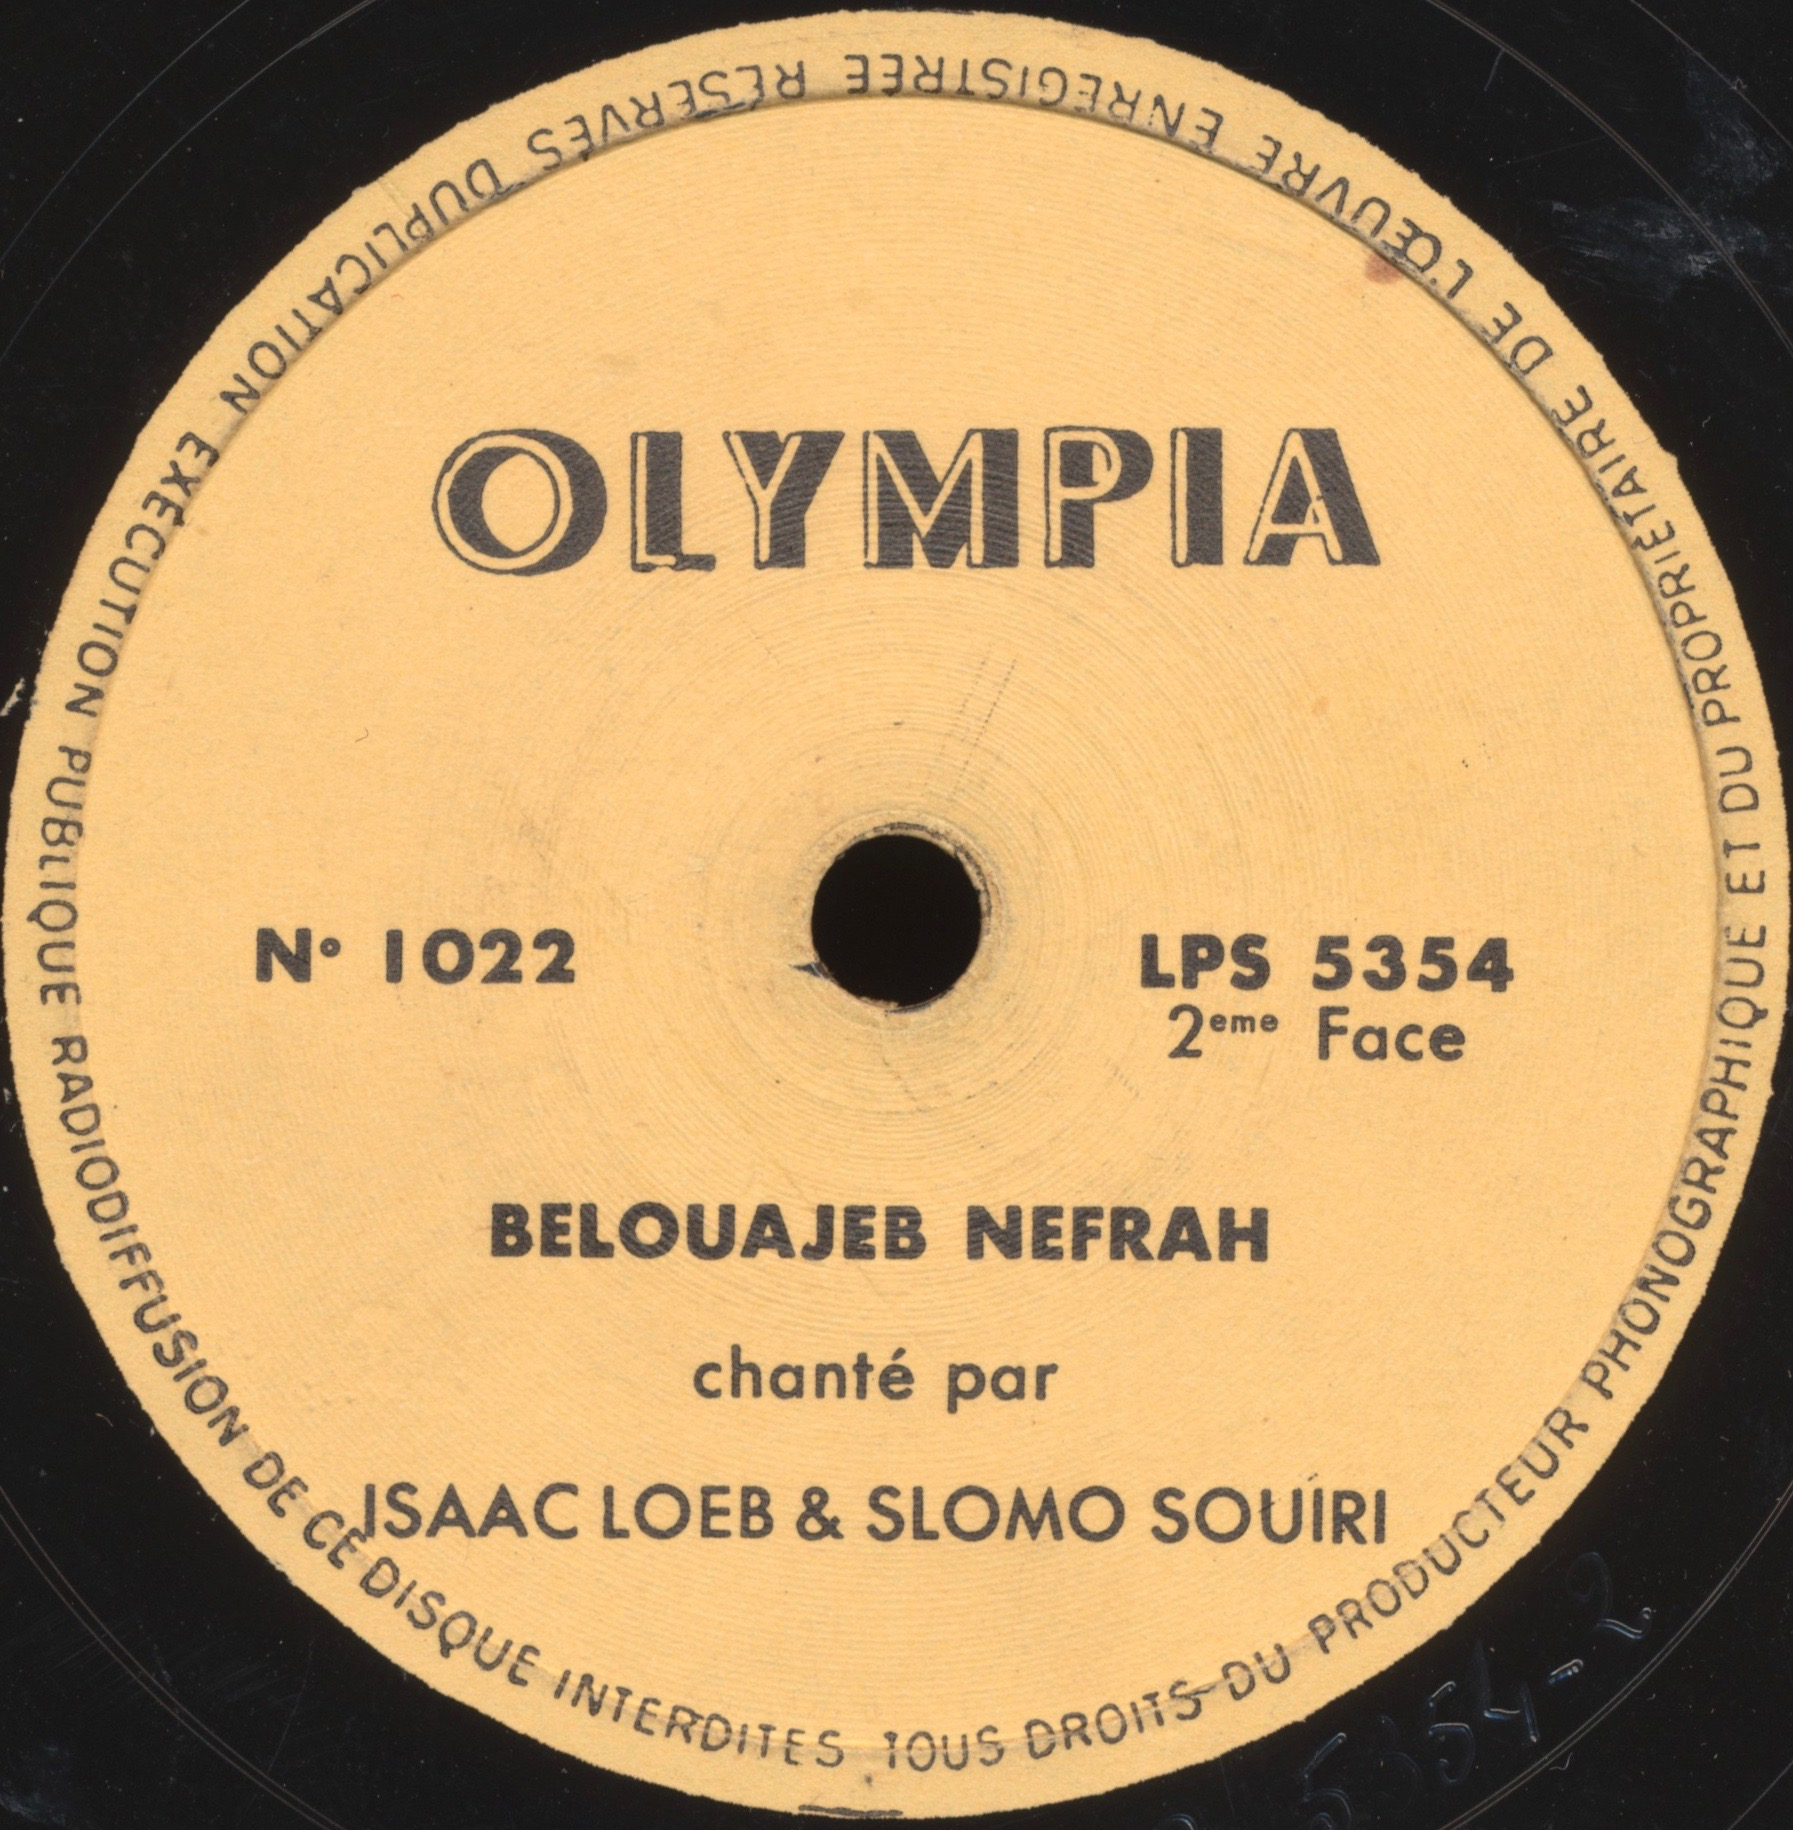 Isaac Loeb & Slomo Souiri [yellow] - Belouajeb Nefrah - Side 2